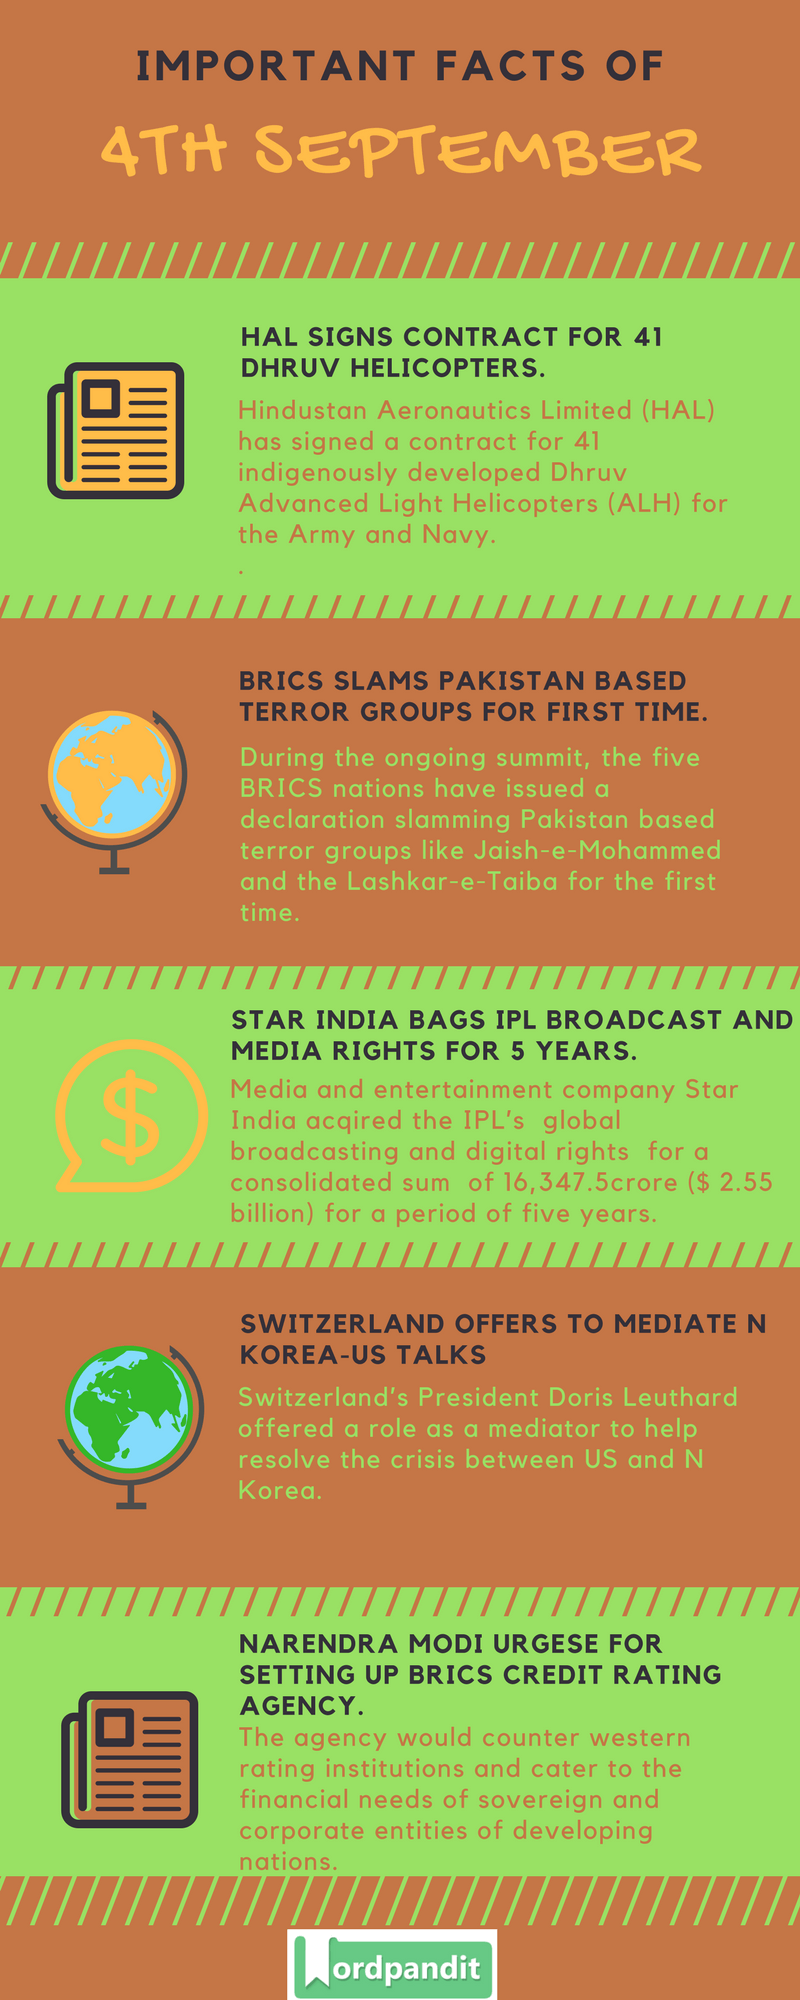 Daily-Current-Affairs-4-september-2017-Current-Affairs-Quiz-september-4-2017-Current-Affairs-Infographic